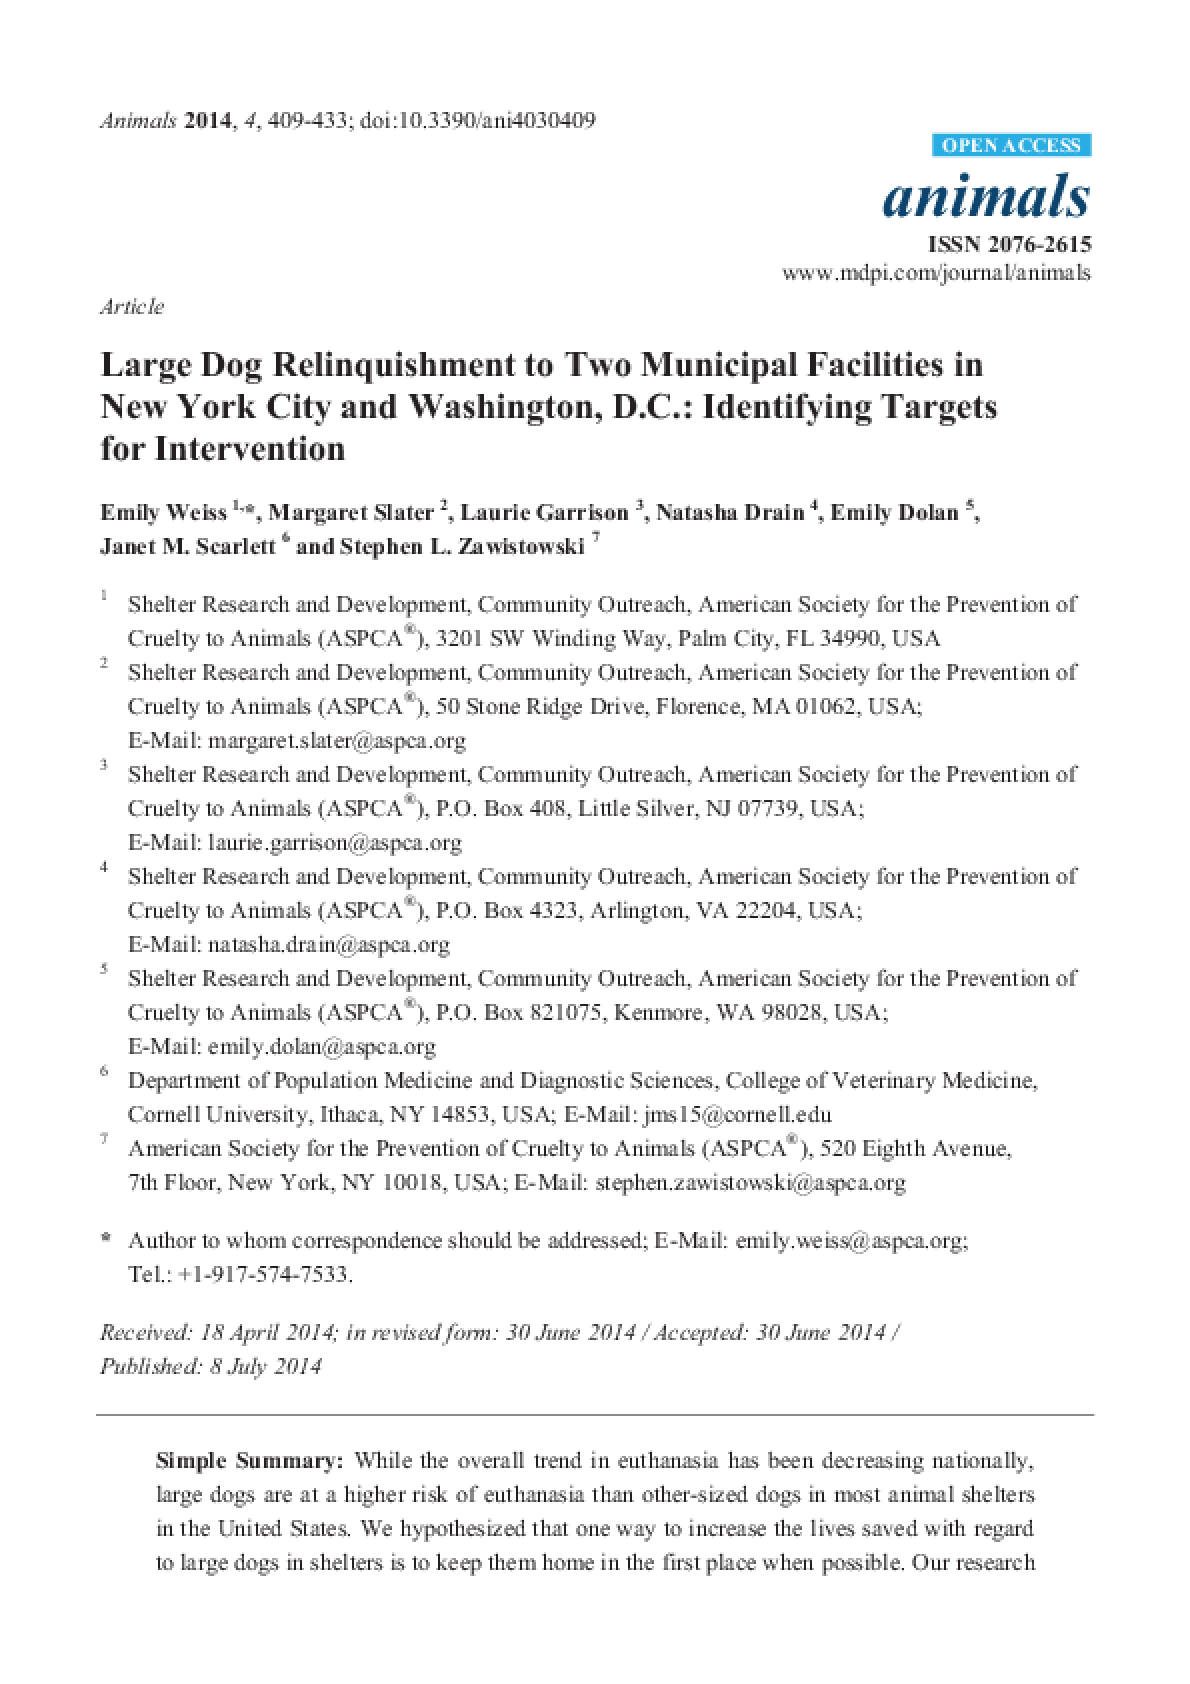 Large Dog Relinquishment to Two Municipal Facilities in New York City and Washington, D.C.: Identifying Targets for Intervention